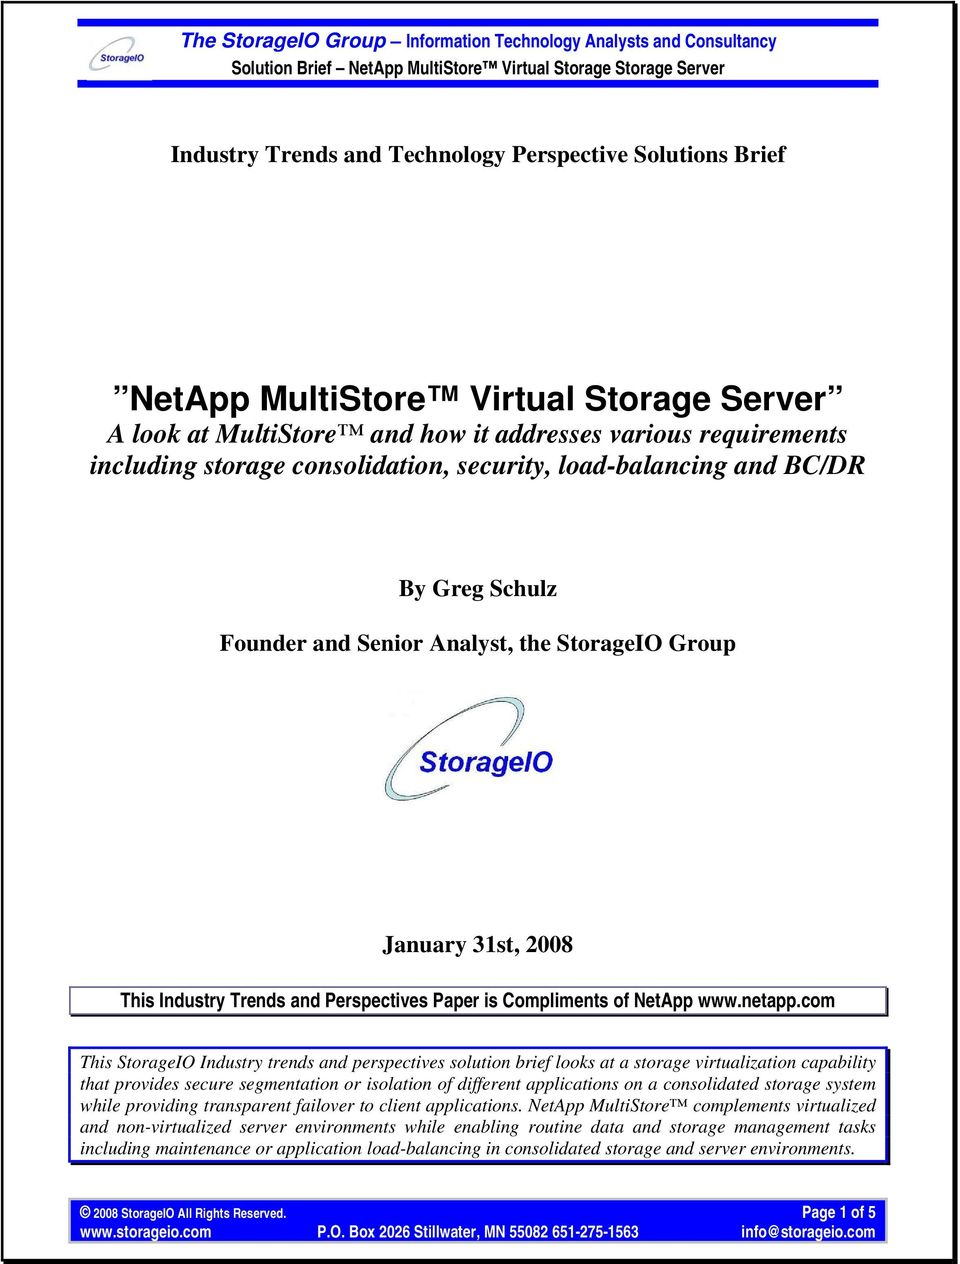 com This StorageIO Industry trends and perspectives solution brief looks at a storage virtualization capability that provides secure segmentation or isolation of different applications on a